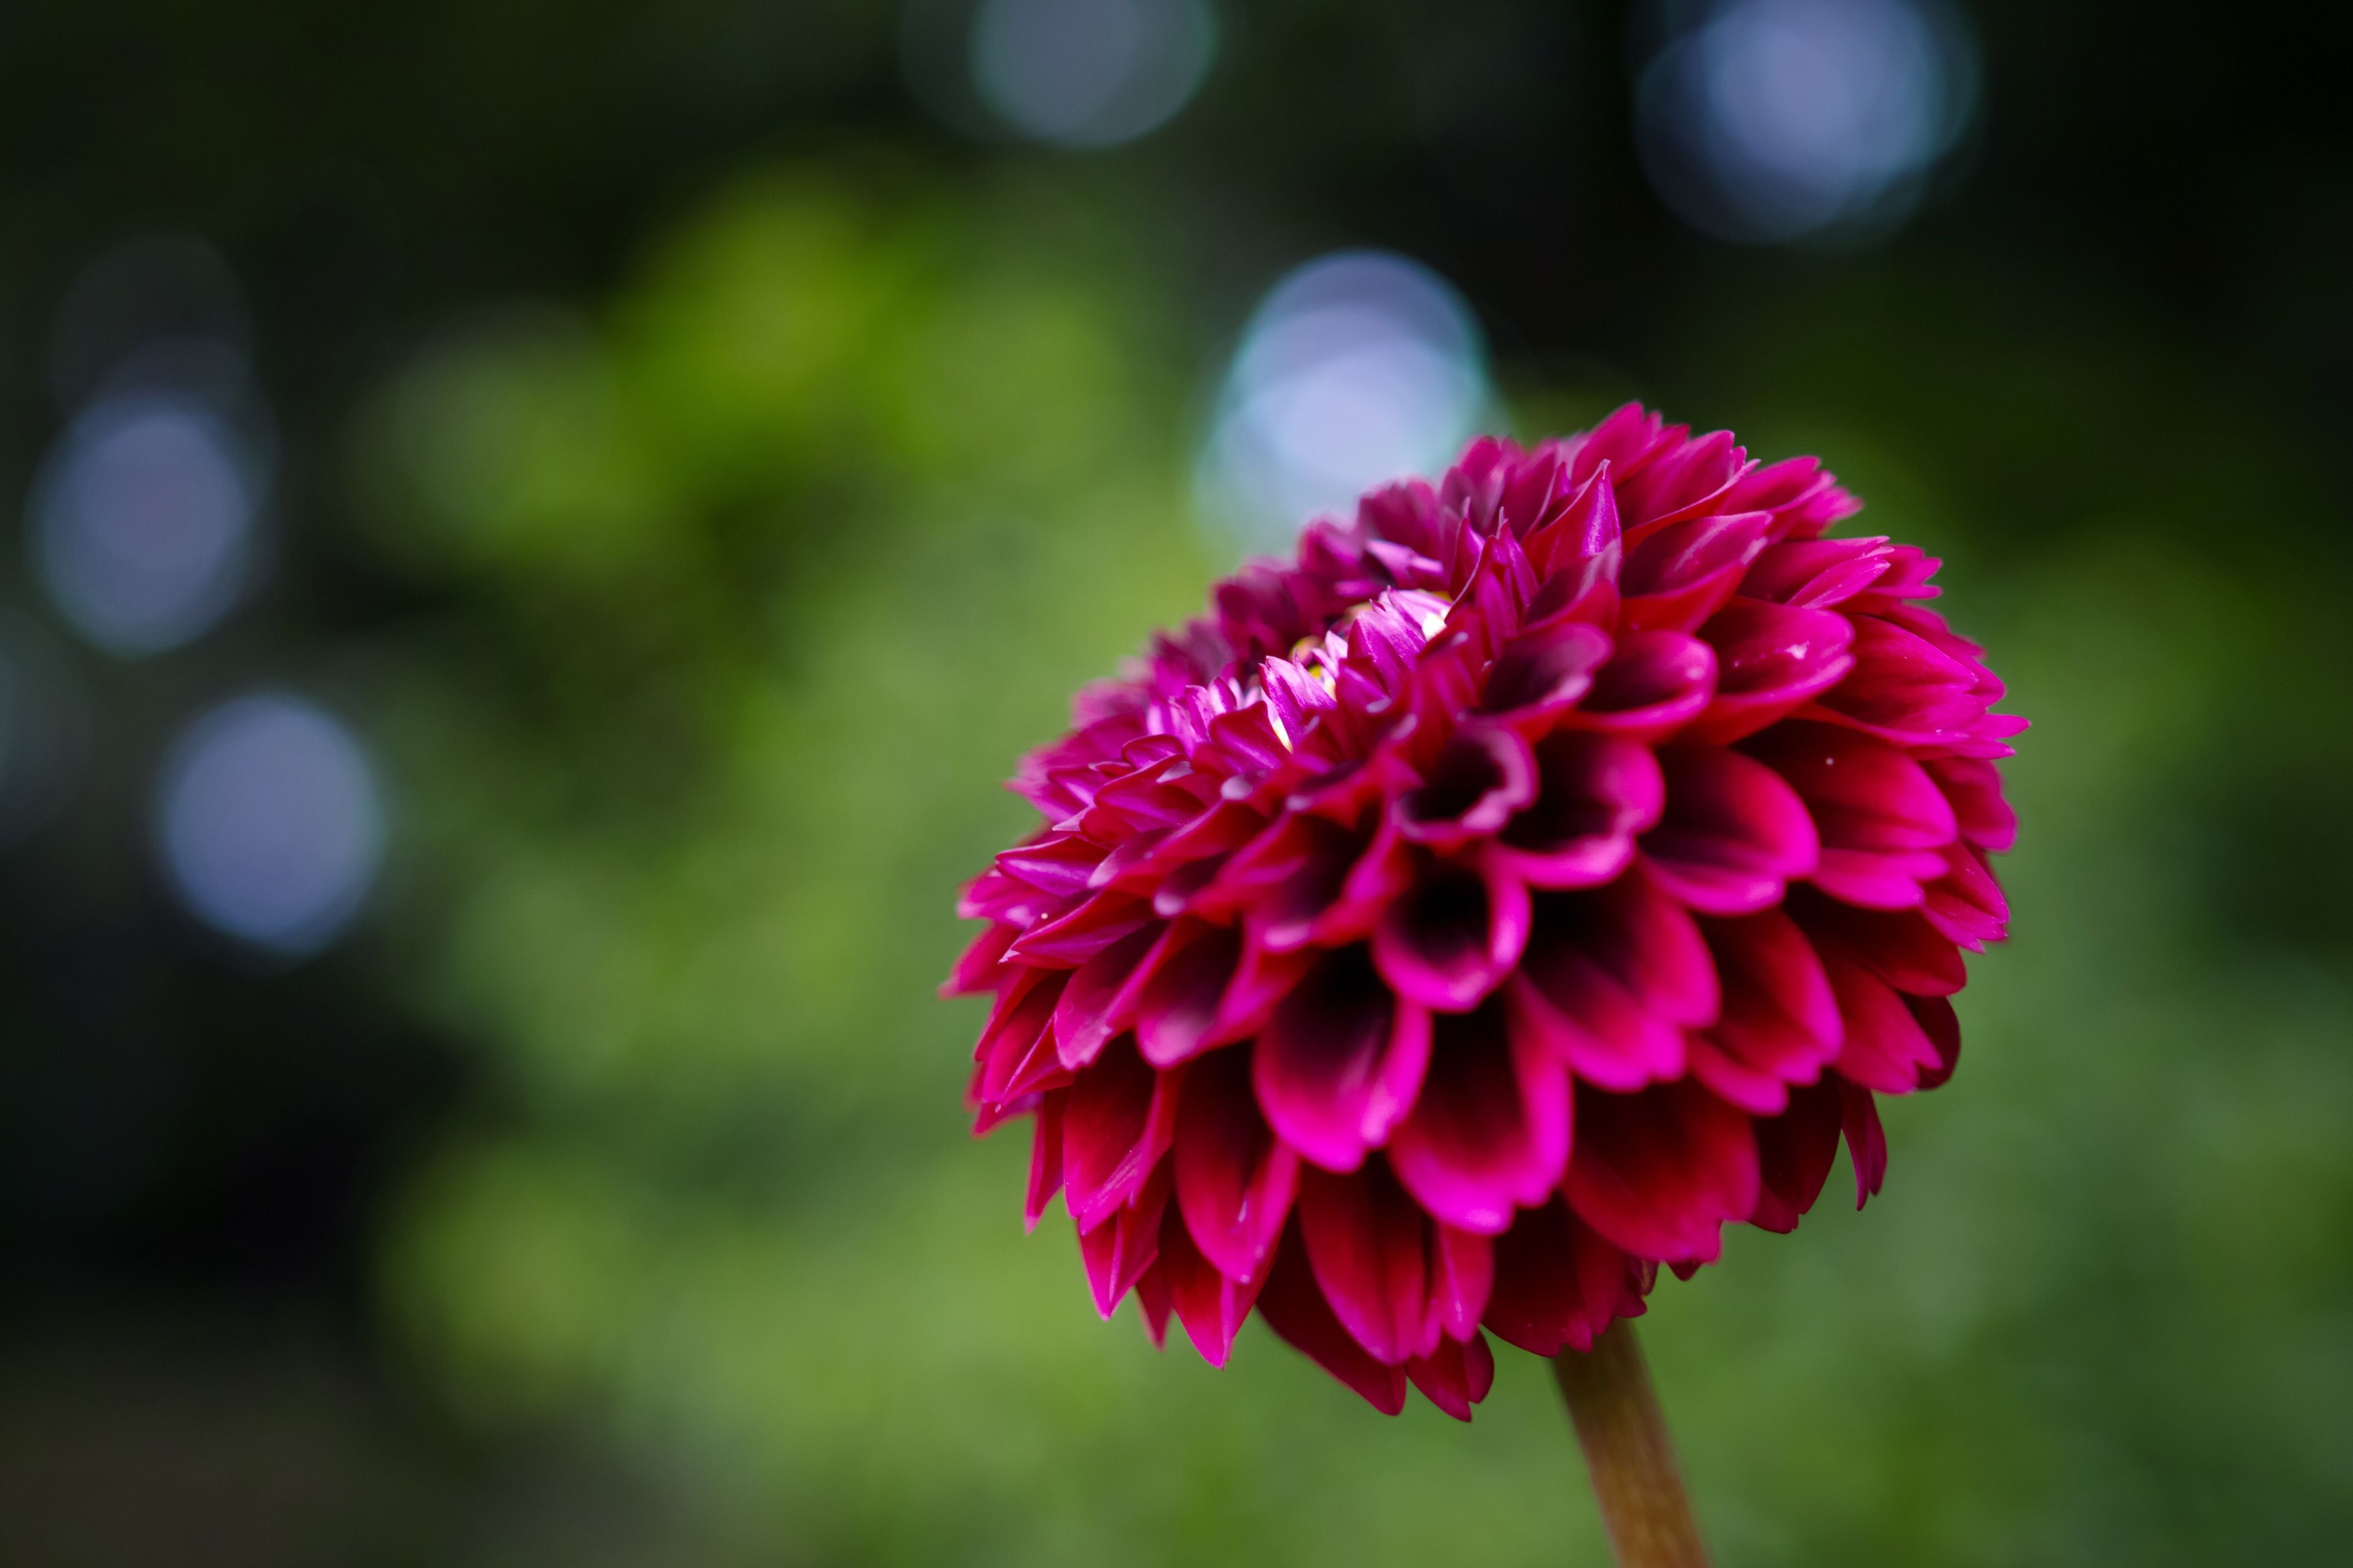 flower, beauty in nature, nature, fragility, petal, focus on foreground, freshness, growth, flower head, no people, pink color, blooming, close-up, day, outdoors, zinnia